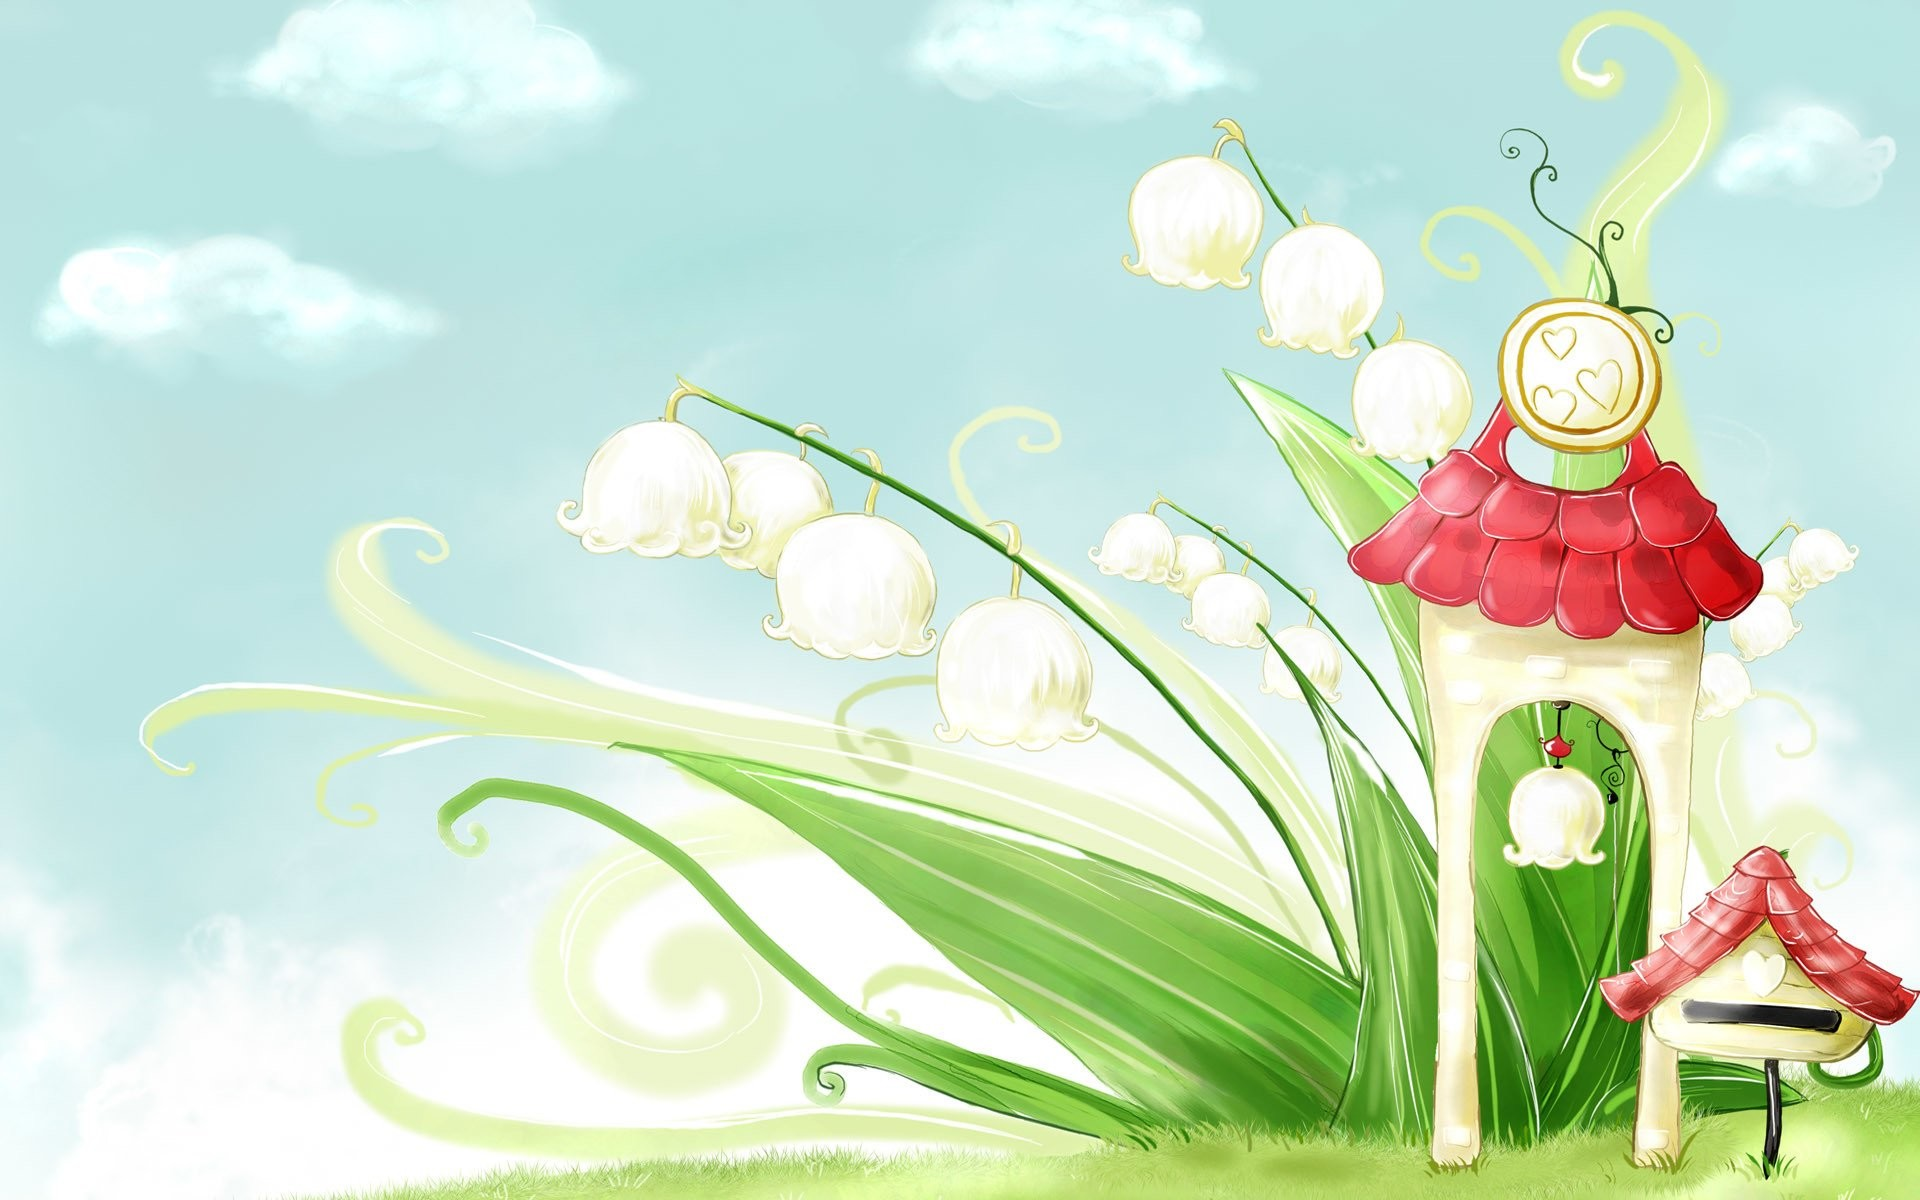 1920x1200 cutest wallpapers for free download Source · Cutes For Desktop 553985  WallDevil